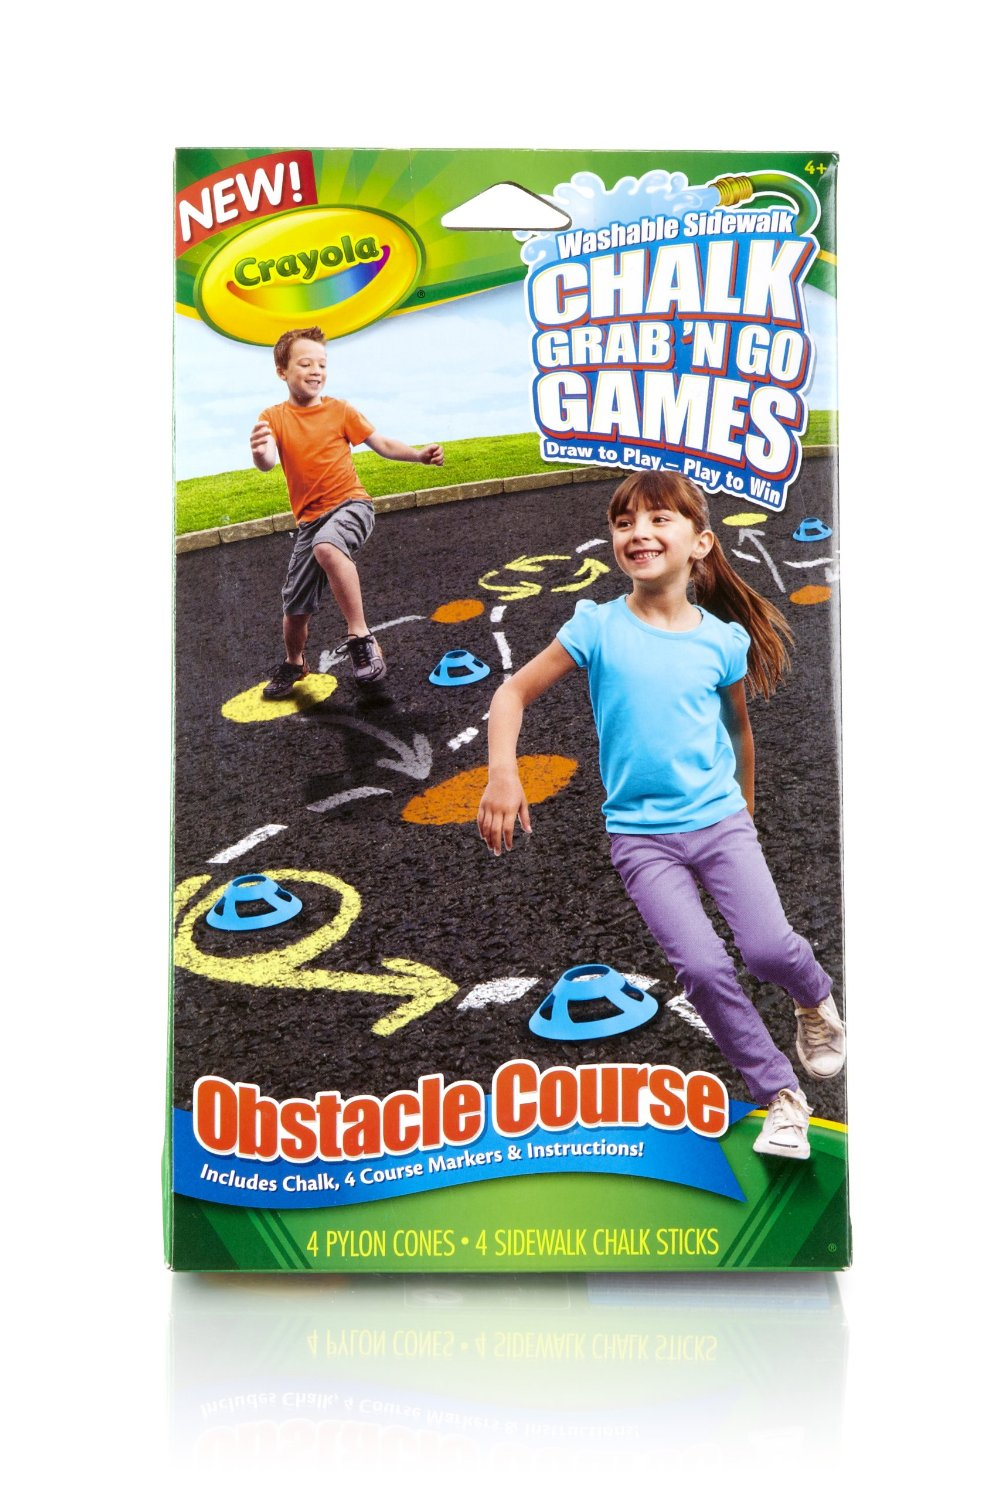 Crayola Obstacle Course Chalk Grab and Go Games, sidewalk chalk, crayola, outdoor game ideas for kids